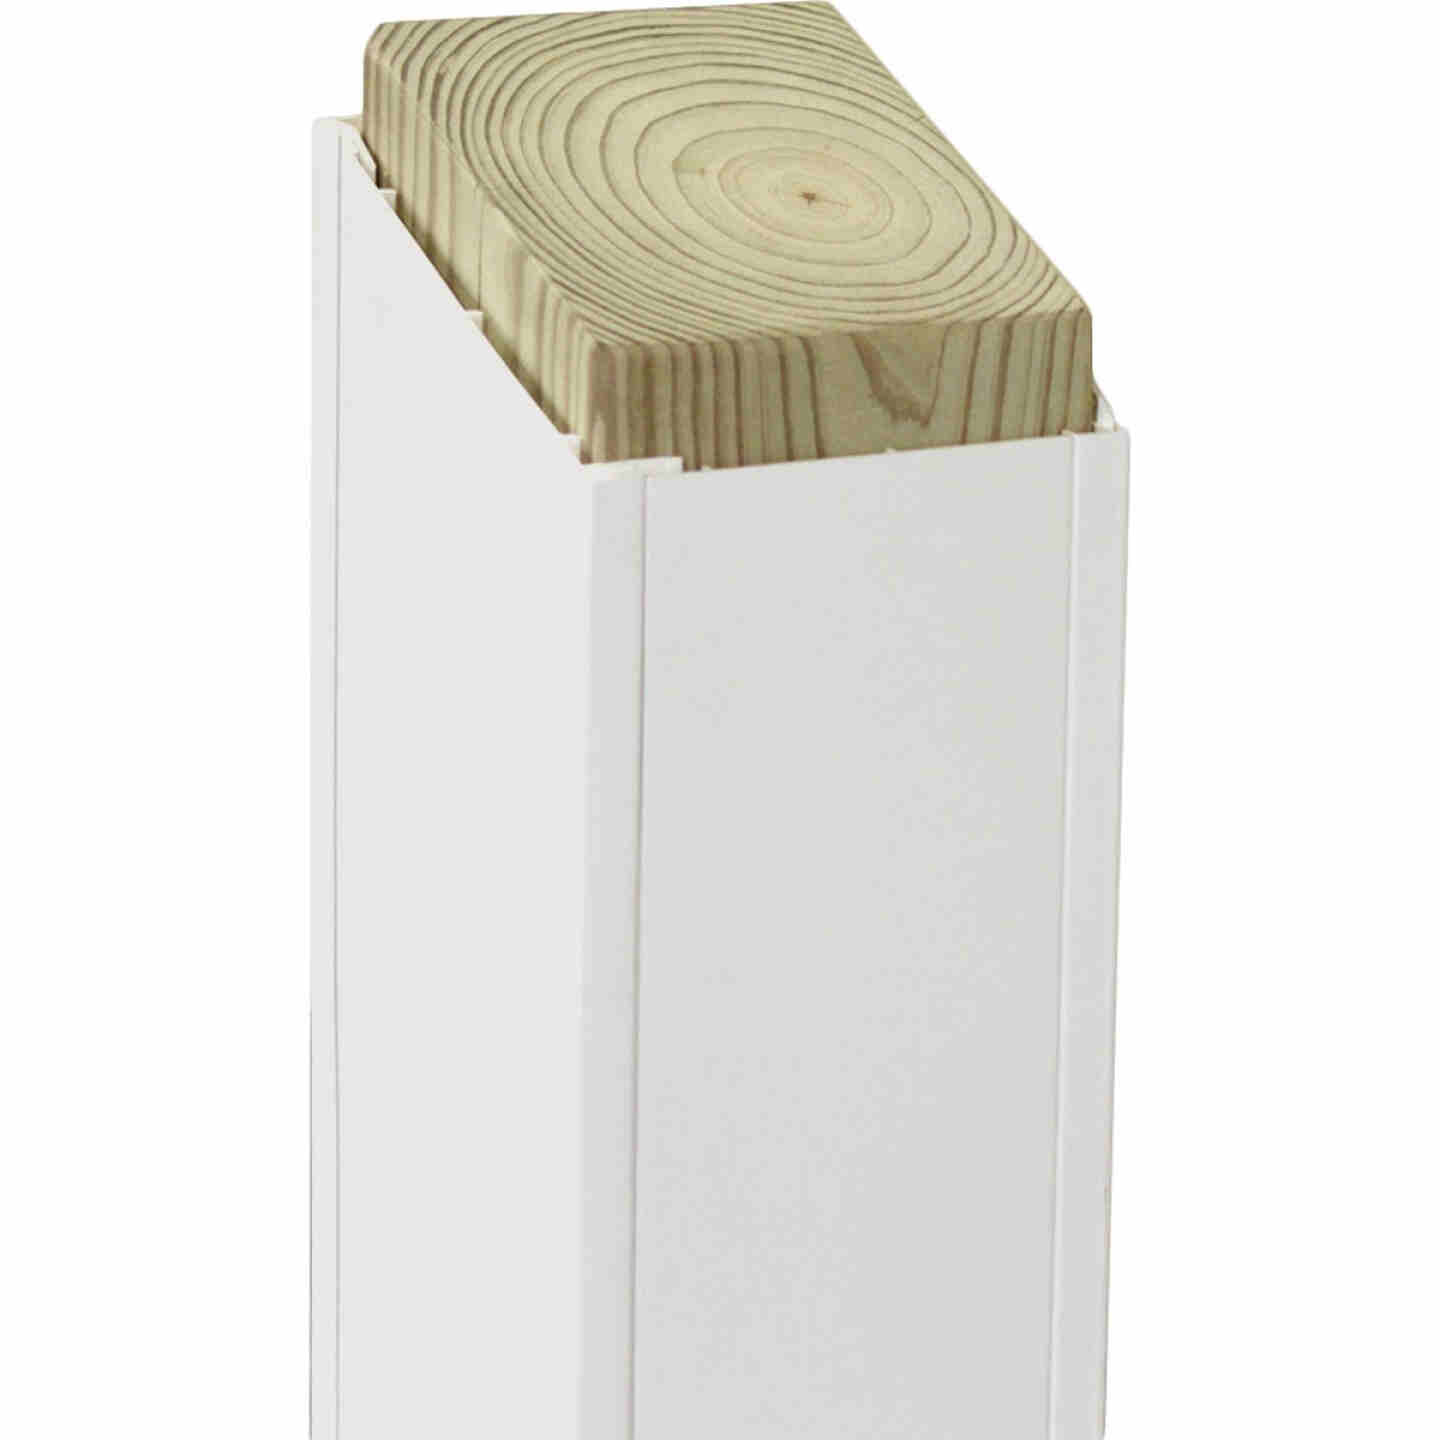 Beechdale 6 In. W. x 6 In. H. x 120 In. L. White PVC Smooth Post Wrap Image 1